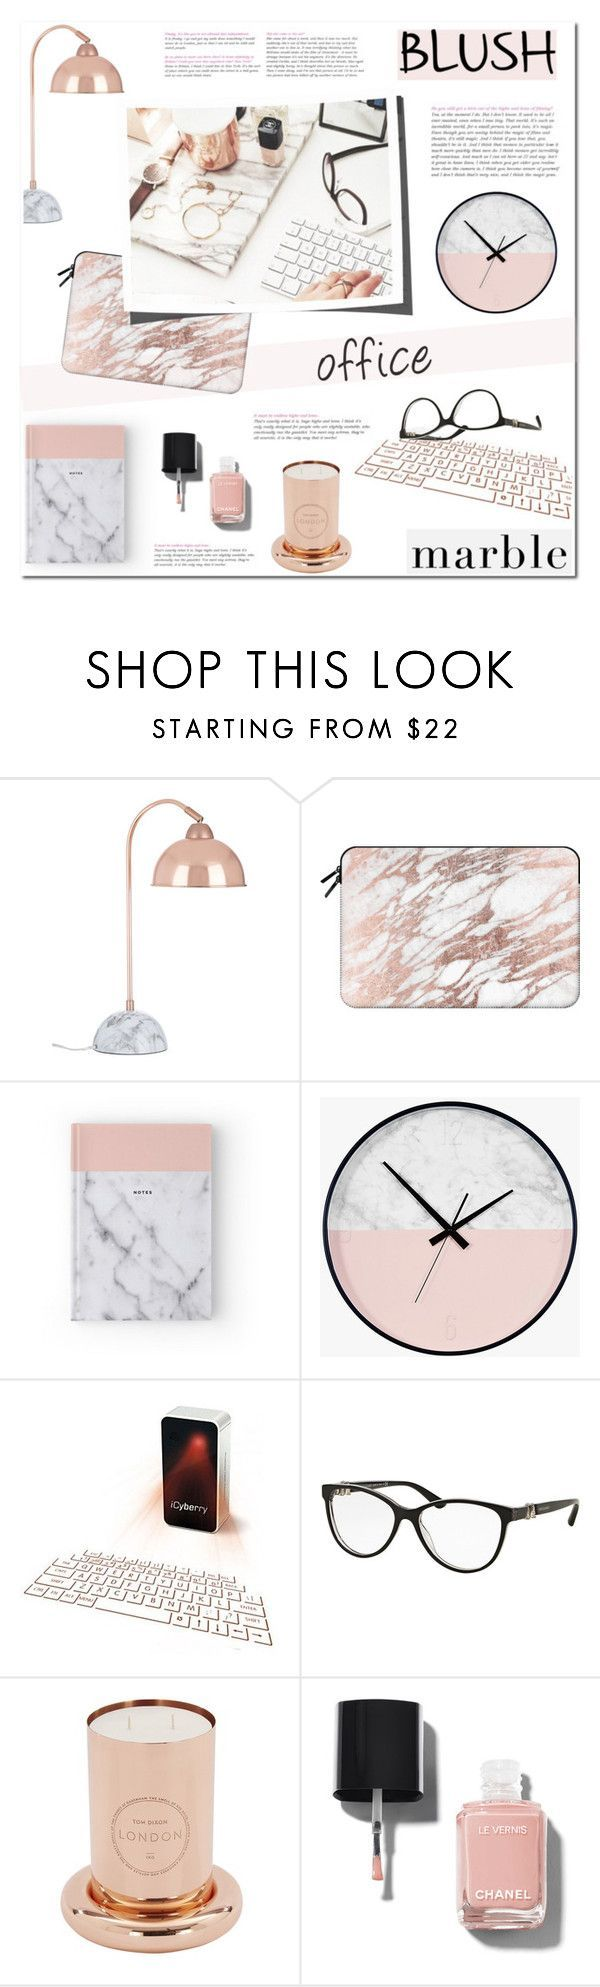 """""""Blush + Marble Office details"""" by helenevlacho on Polyvore featuring interior, interiors, interior design, home, home decor, interior decorating, Casetify, Bulgari, Tom Dixon and Chanel"""